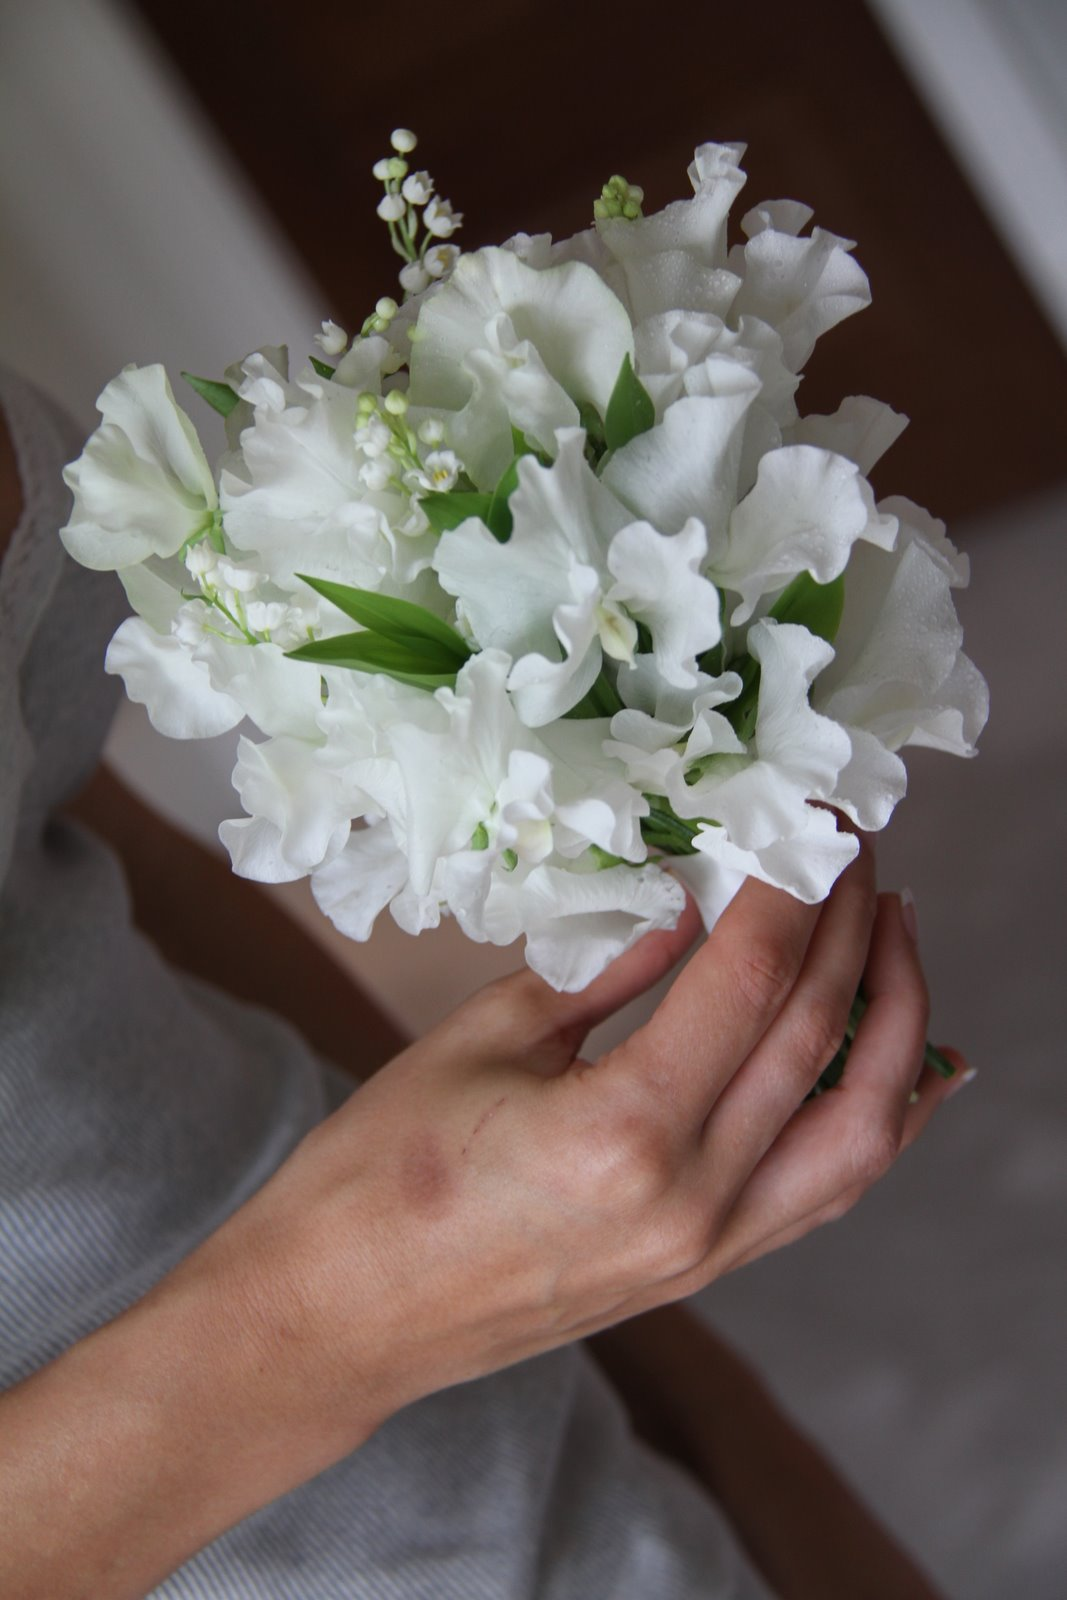 Flower design beautiful bridesmaids bouquets sweet peas lily sweet peas lily of the valley for flower girls bouquets dhlflorist Choice Image